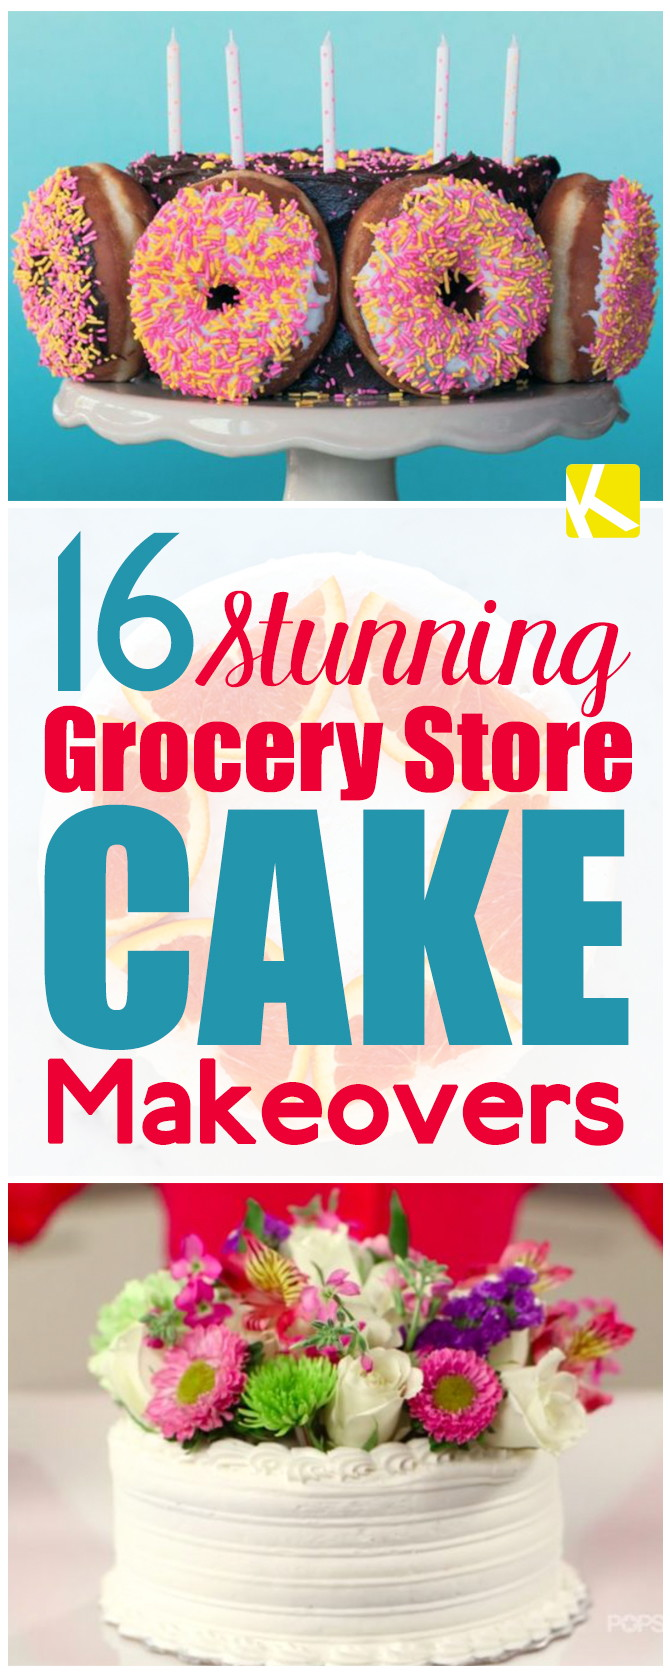 16 Grocery Store Cake Makeovers You'll Need for Your Next Party